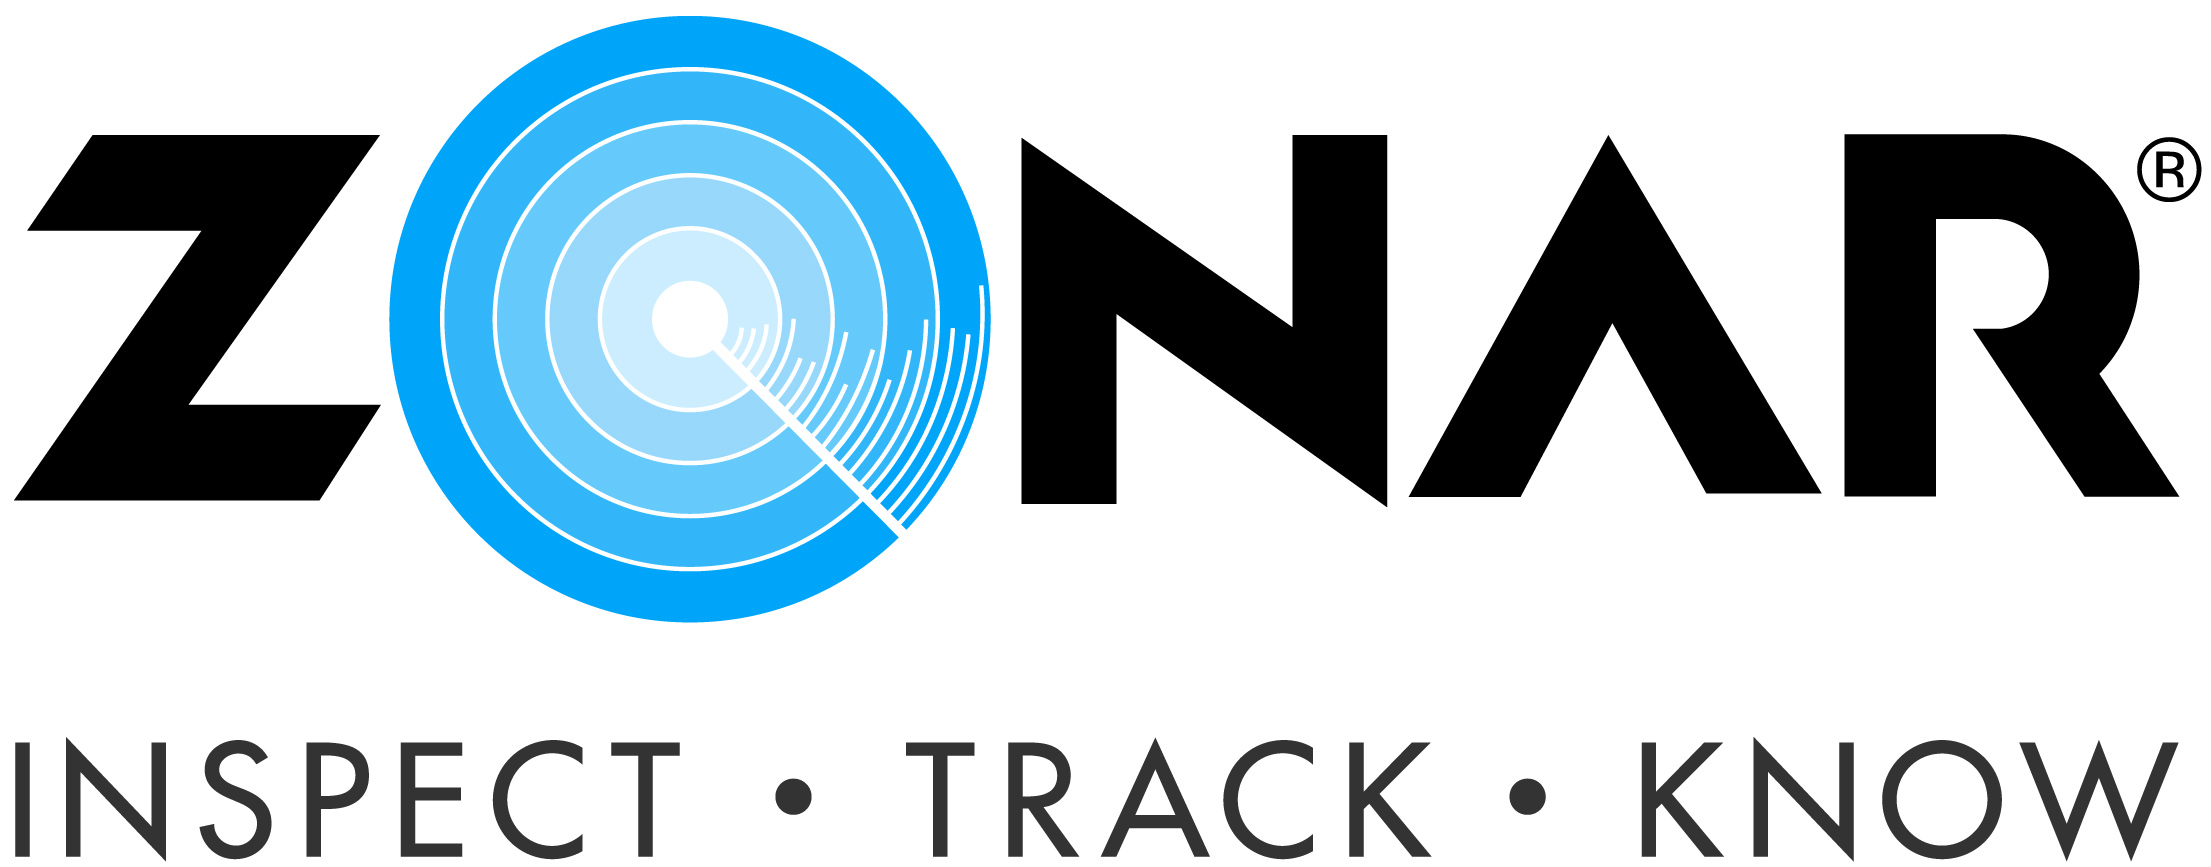 Zonar Releases Fuel Based Gps Tracking Technology New